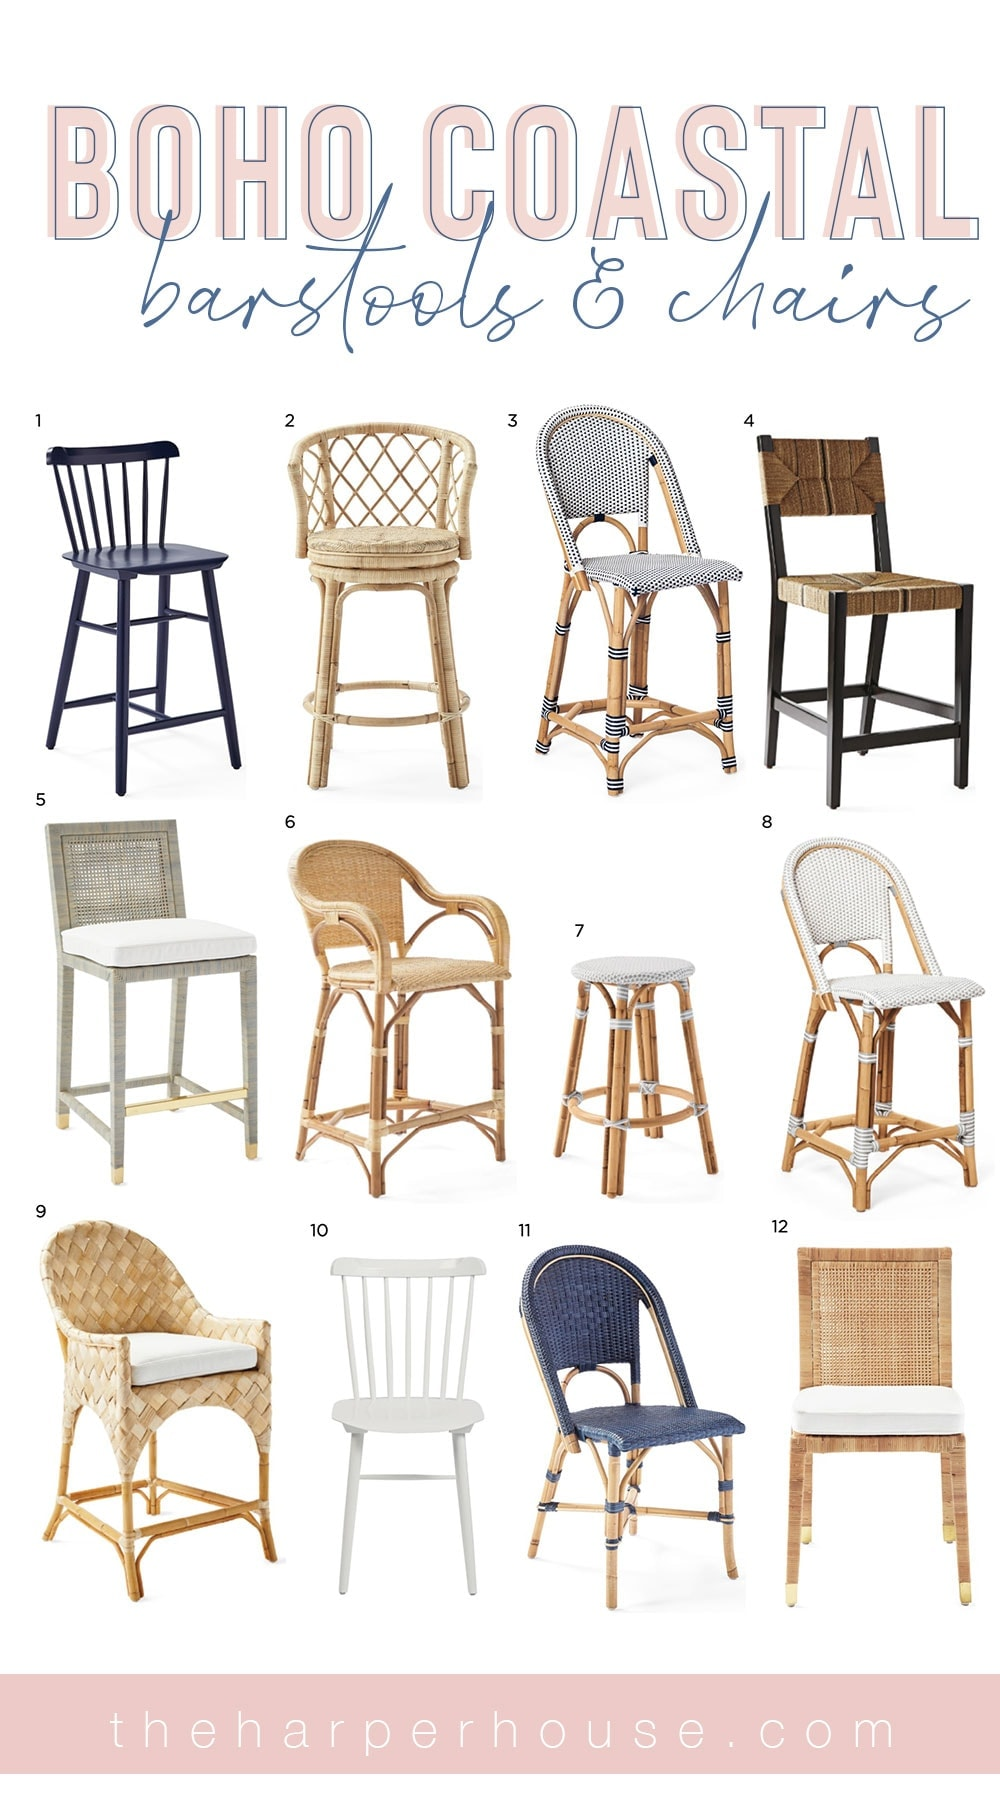 boho coastal dining chairs and barstools